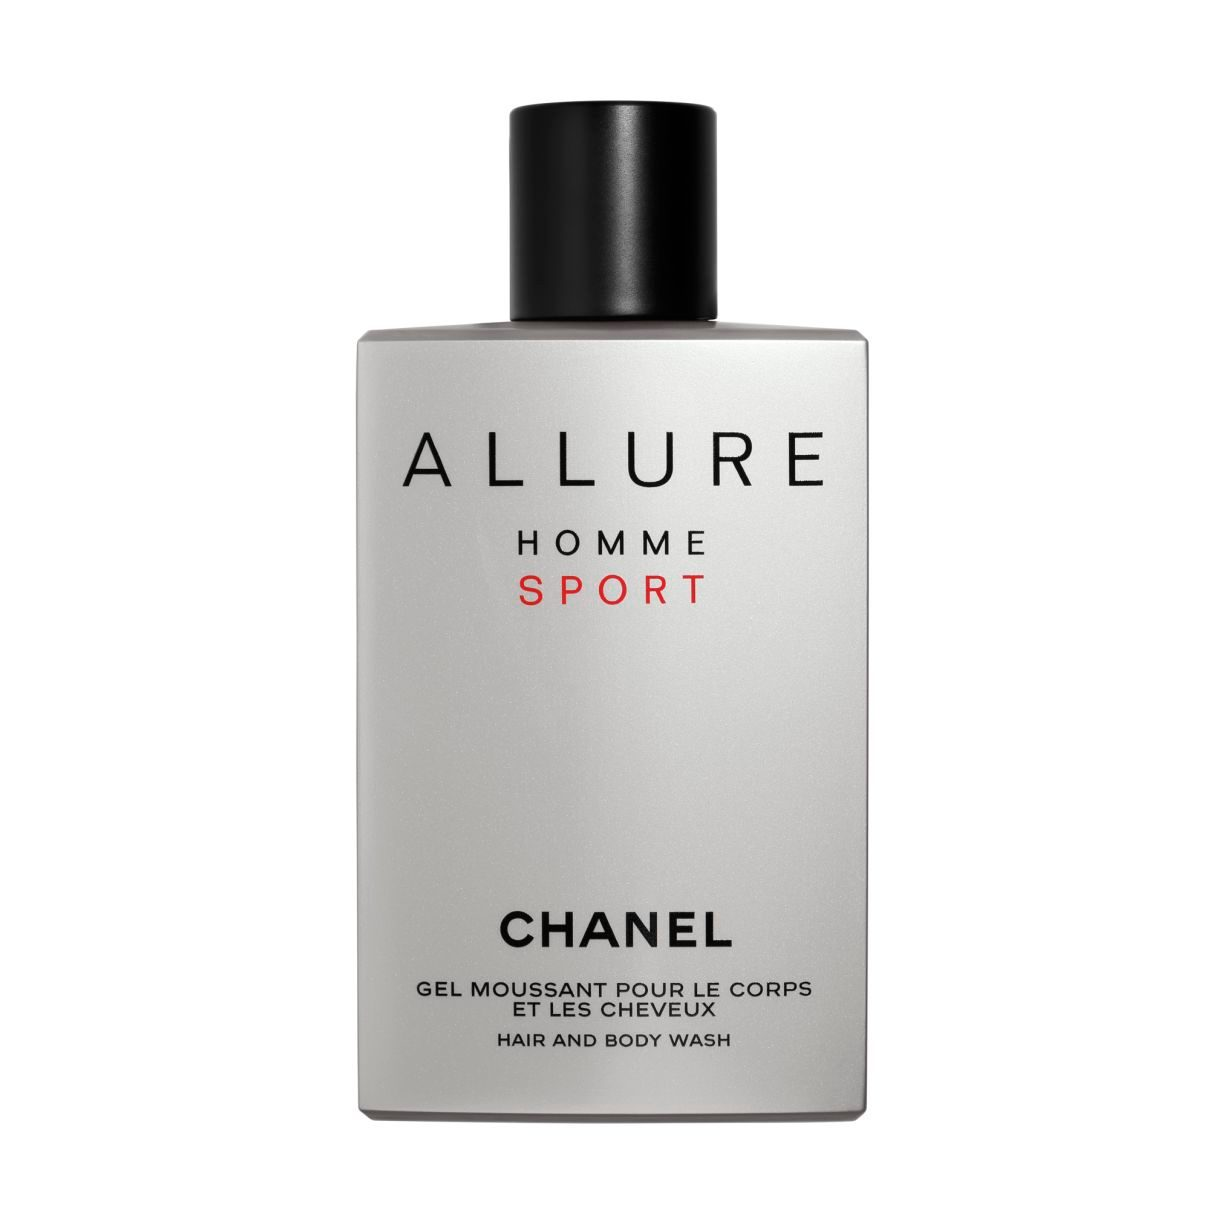 ALLURE HOMME SPORT 헤어 앤 바디 워시